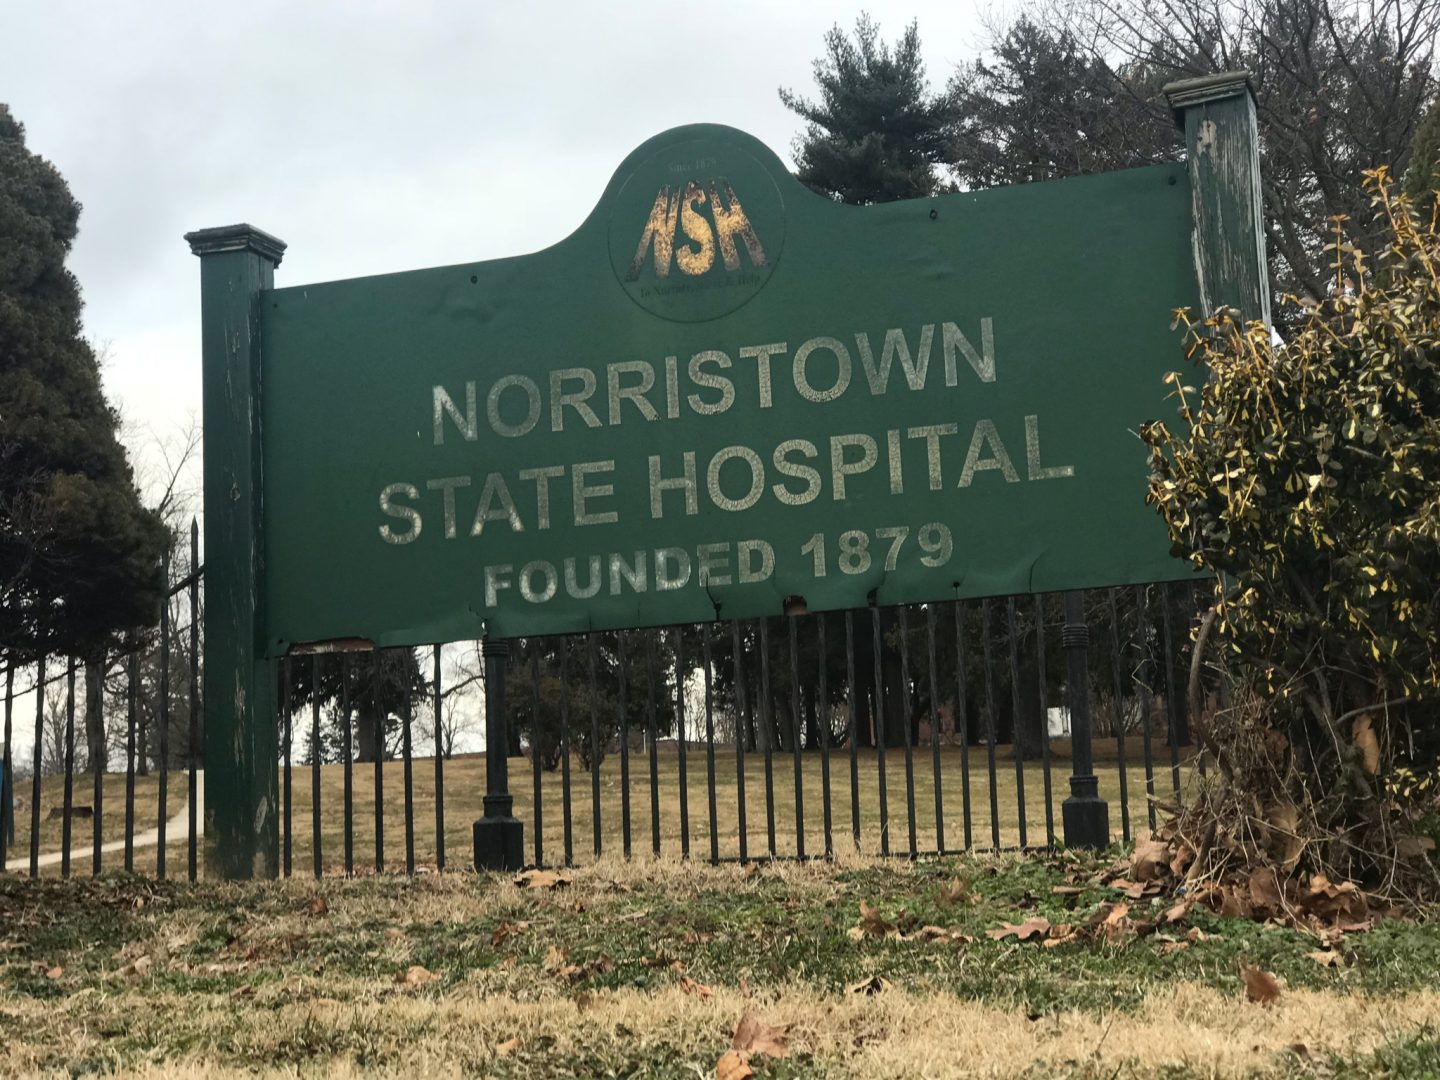 Plans to close the 128 civil beds at Norristown State Hospital were announced in 2017.